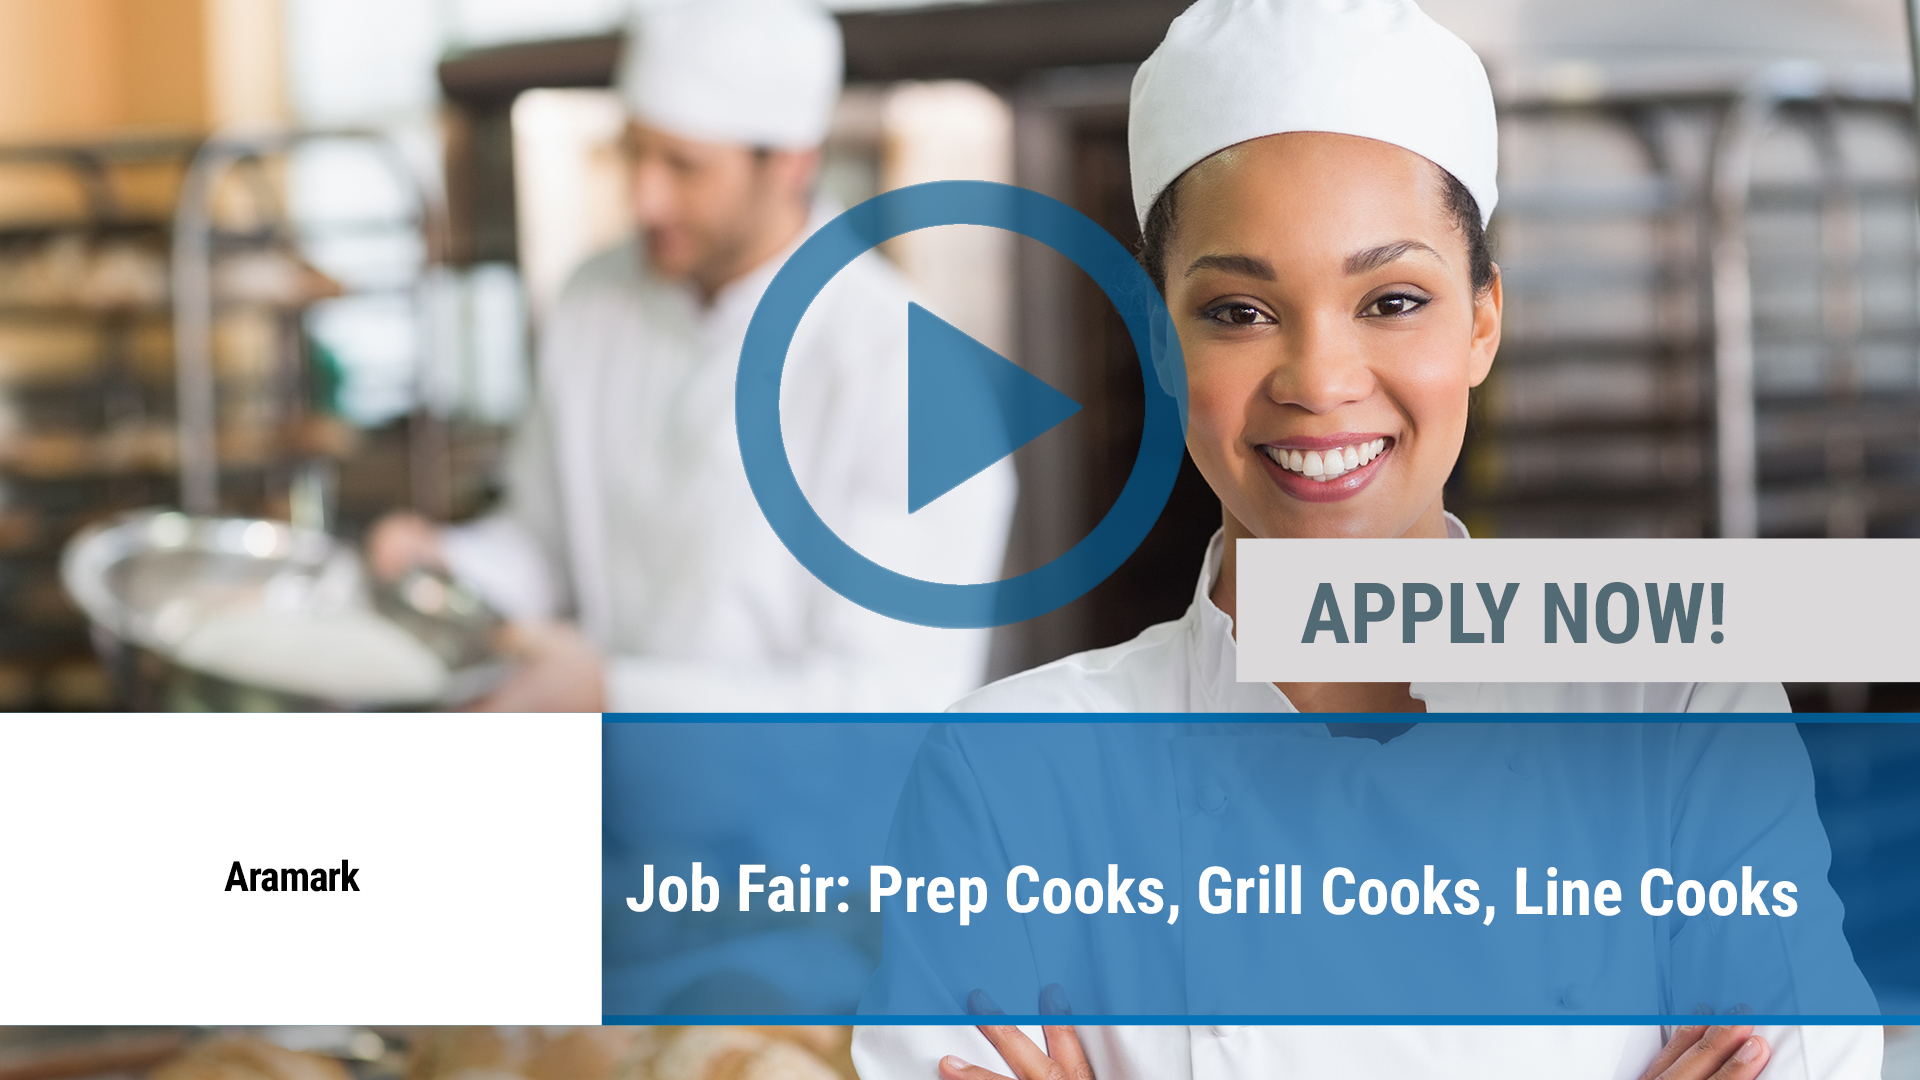 Watch our careers video for available job opening Job Fair: Prep Cooks, Grill Cooks, Line Cooks in Clemson, SC